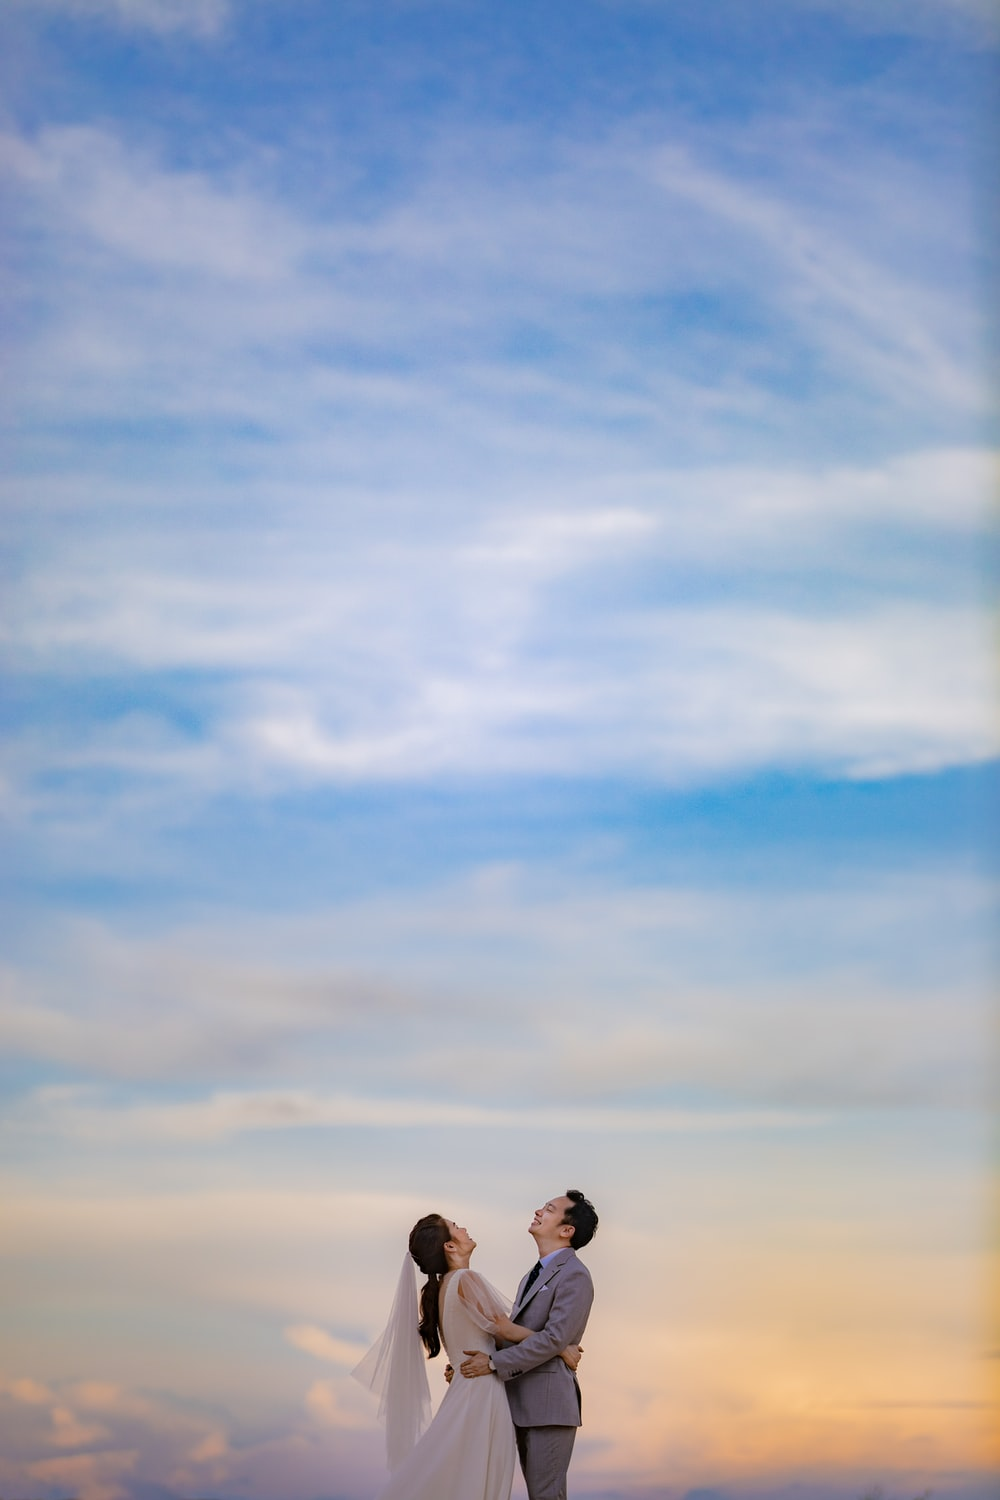 2 person standing under blue sky during daytime